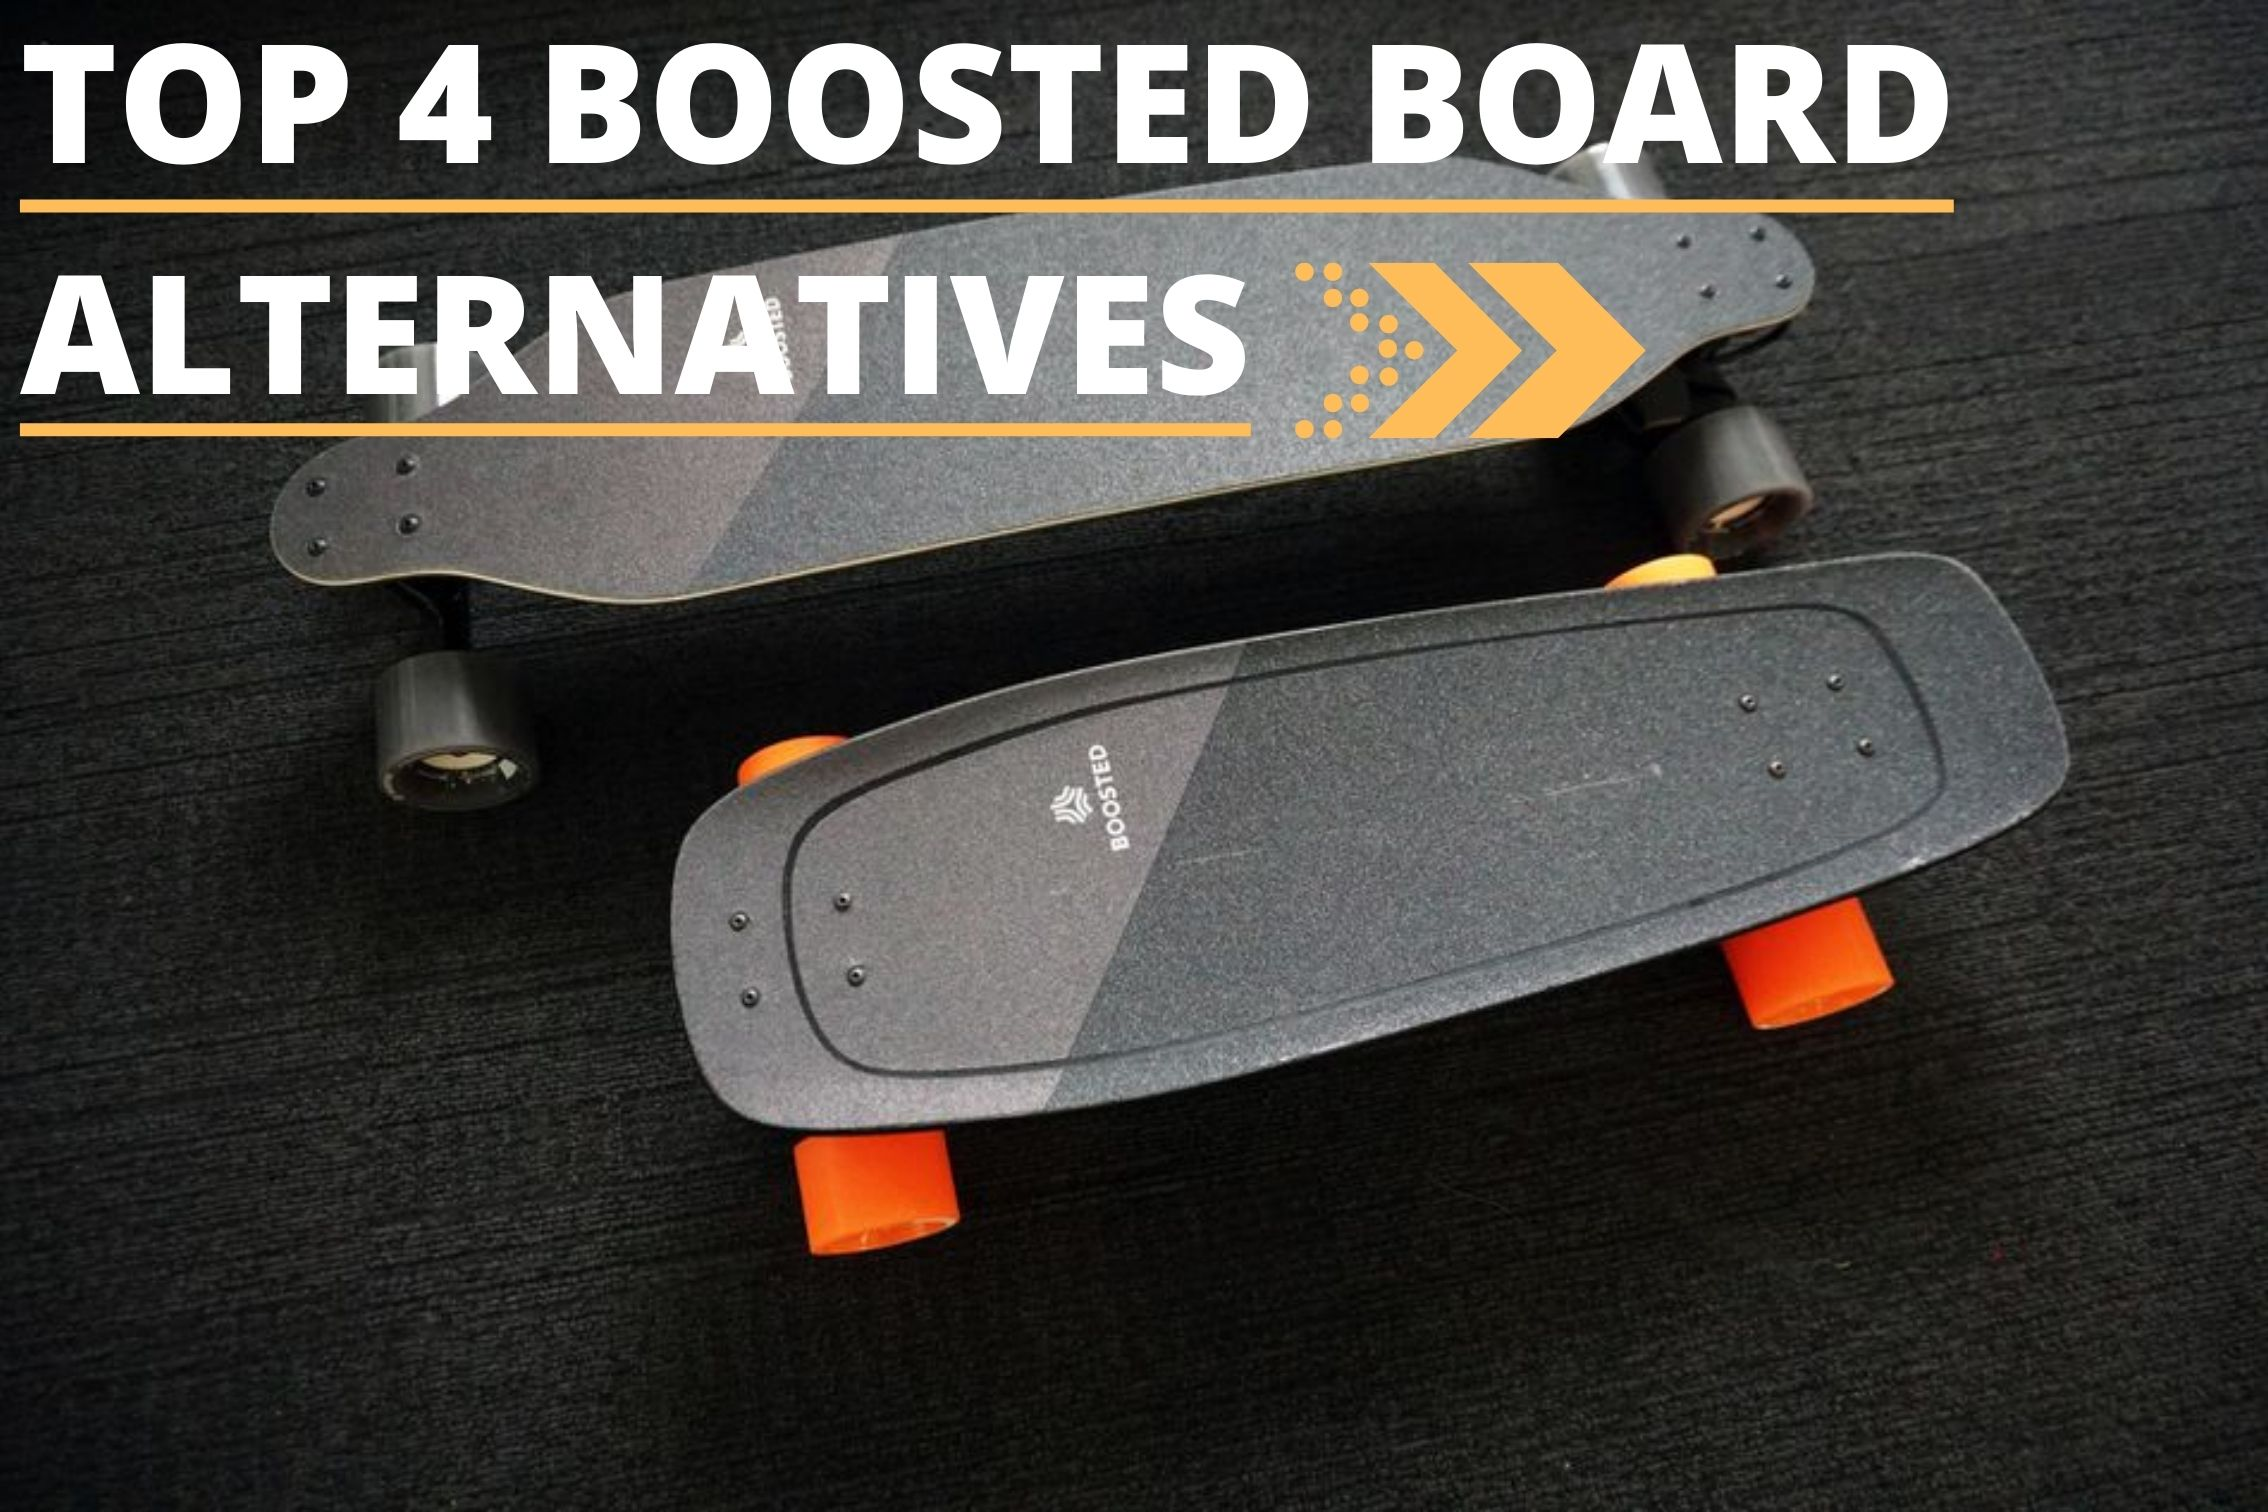 Boosted Board Alternatives